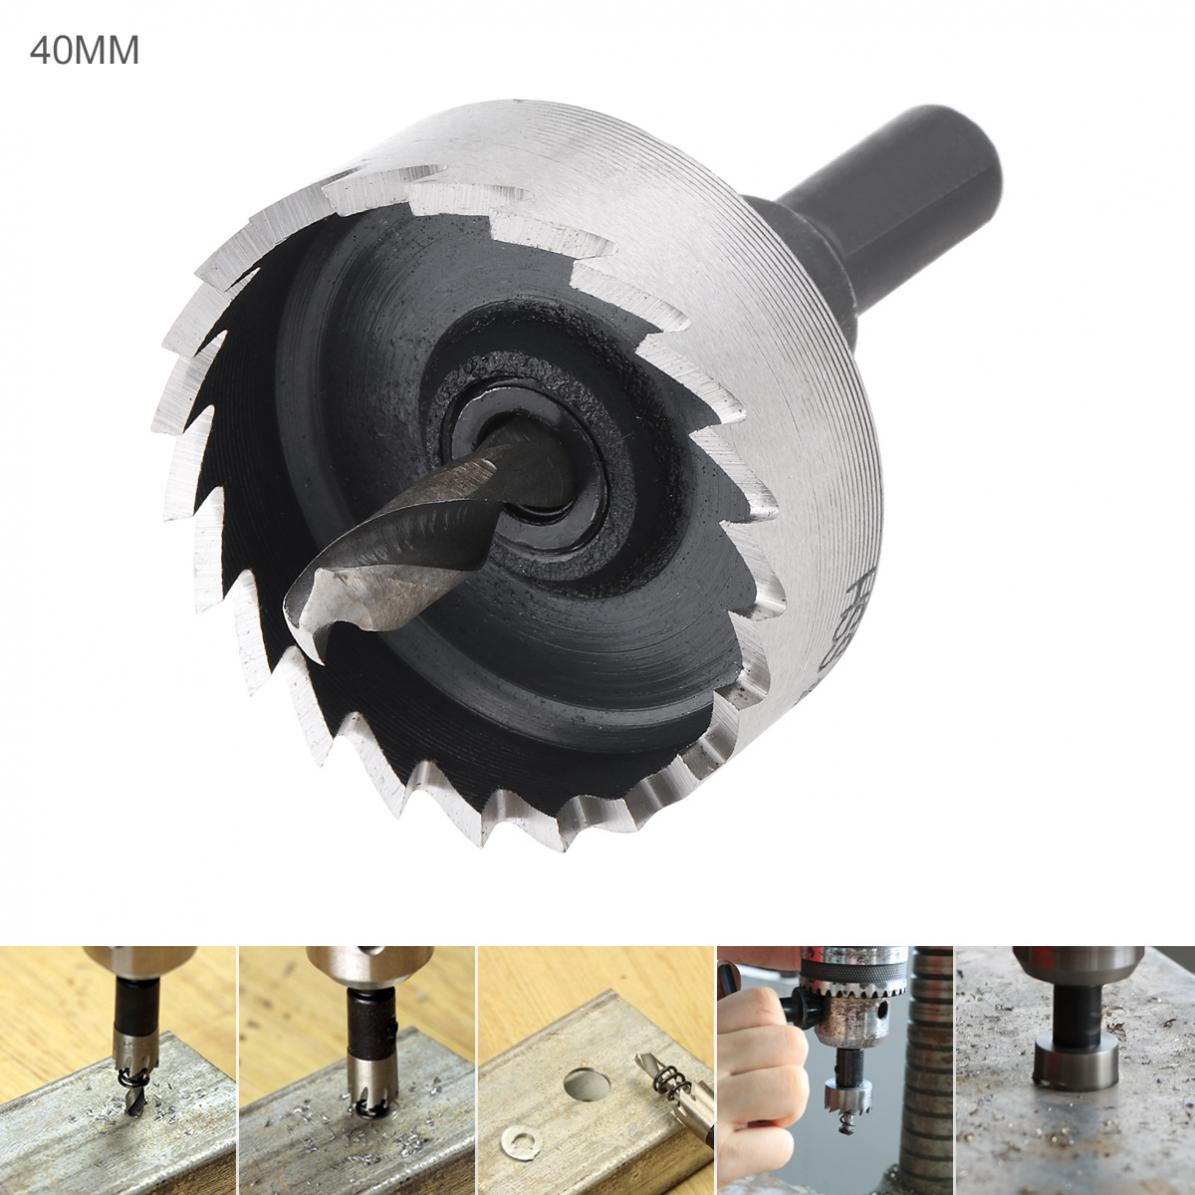 40mm HSS Hole Saw High Speed Steel  Cutter Drill Bits For Pistol Drills / Bench Drills / Magnetic Drills / Air Gun Drills